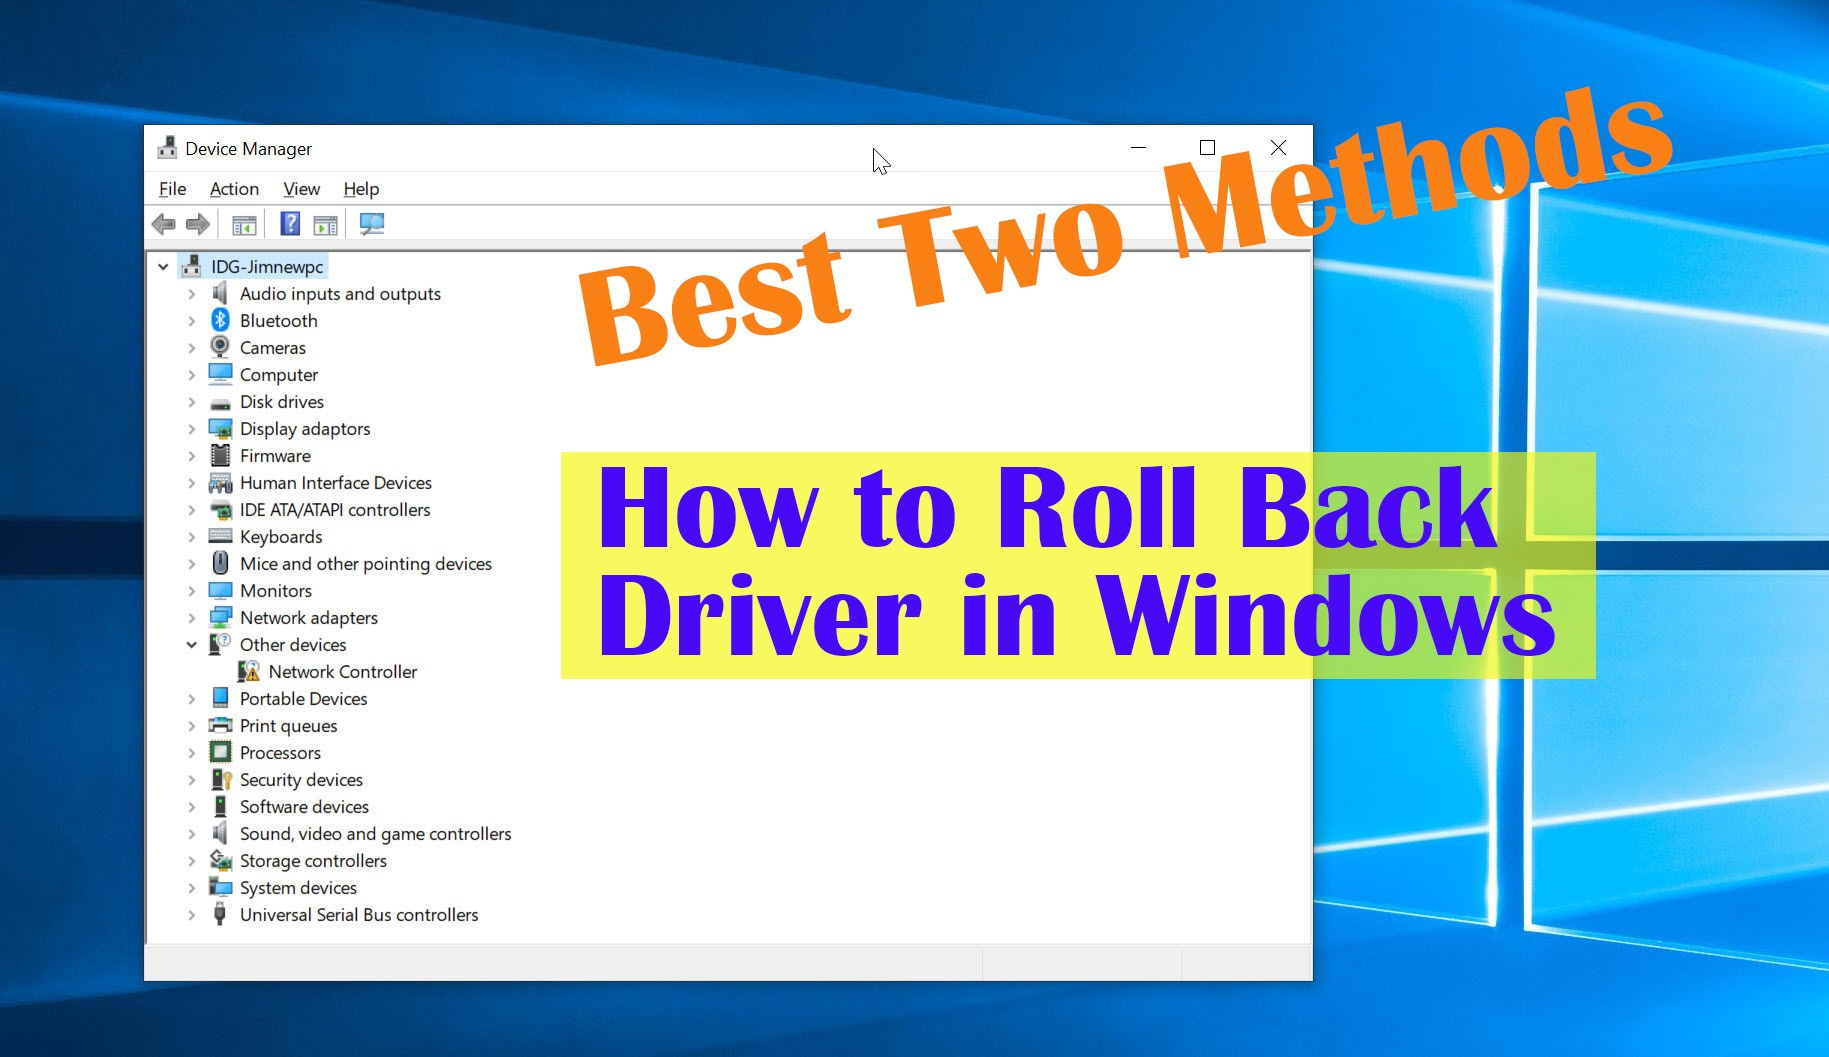 How to Roll Back A Driver in Windows (10,8,7) - Best Methods